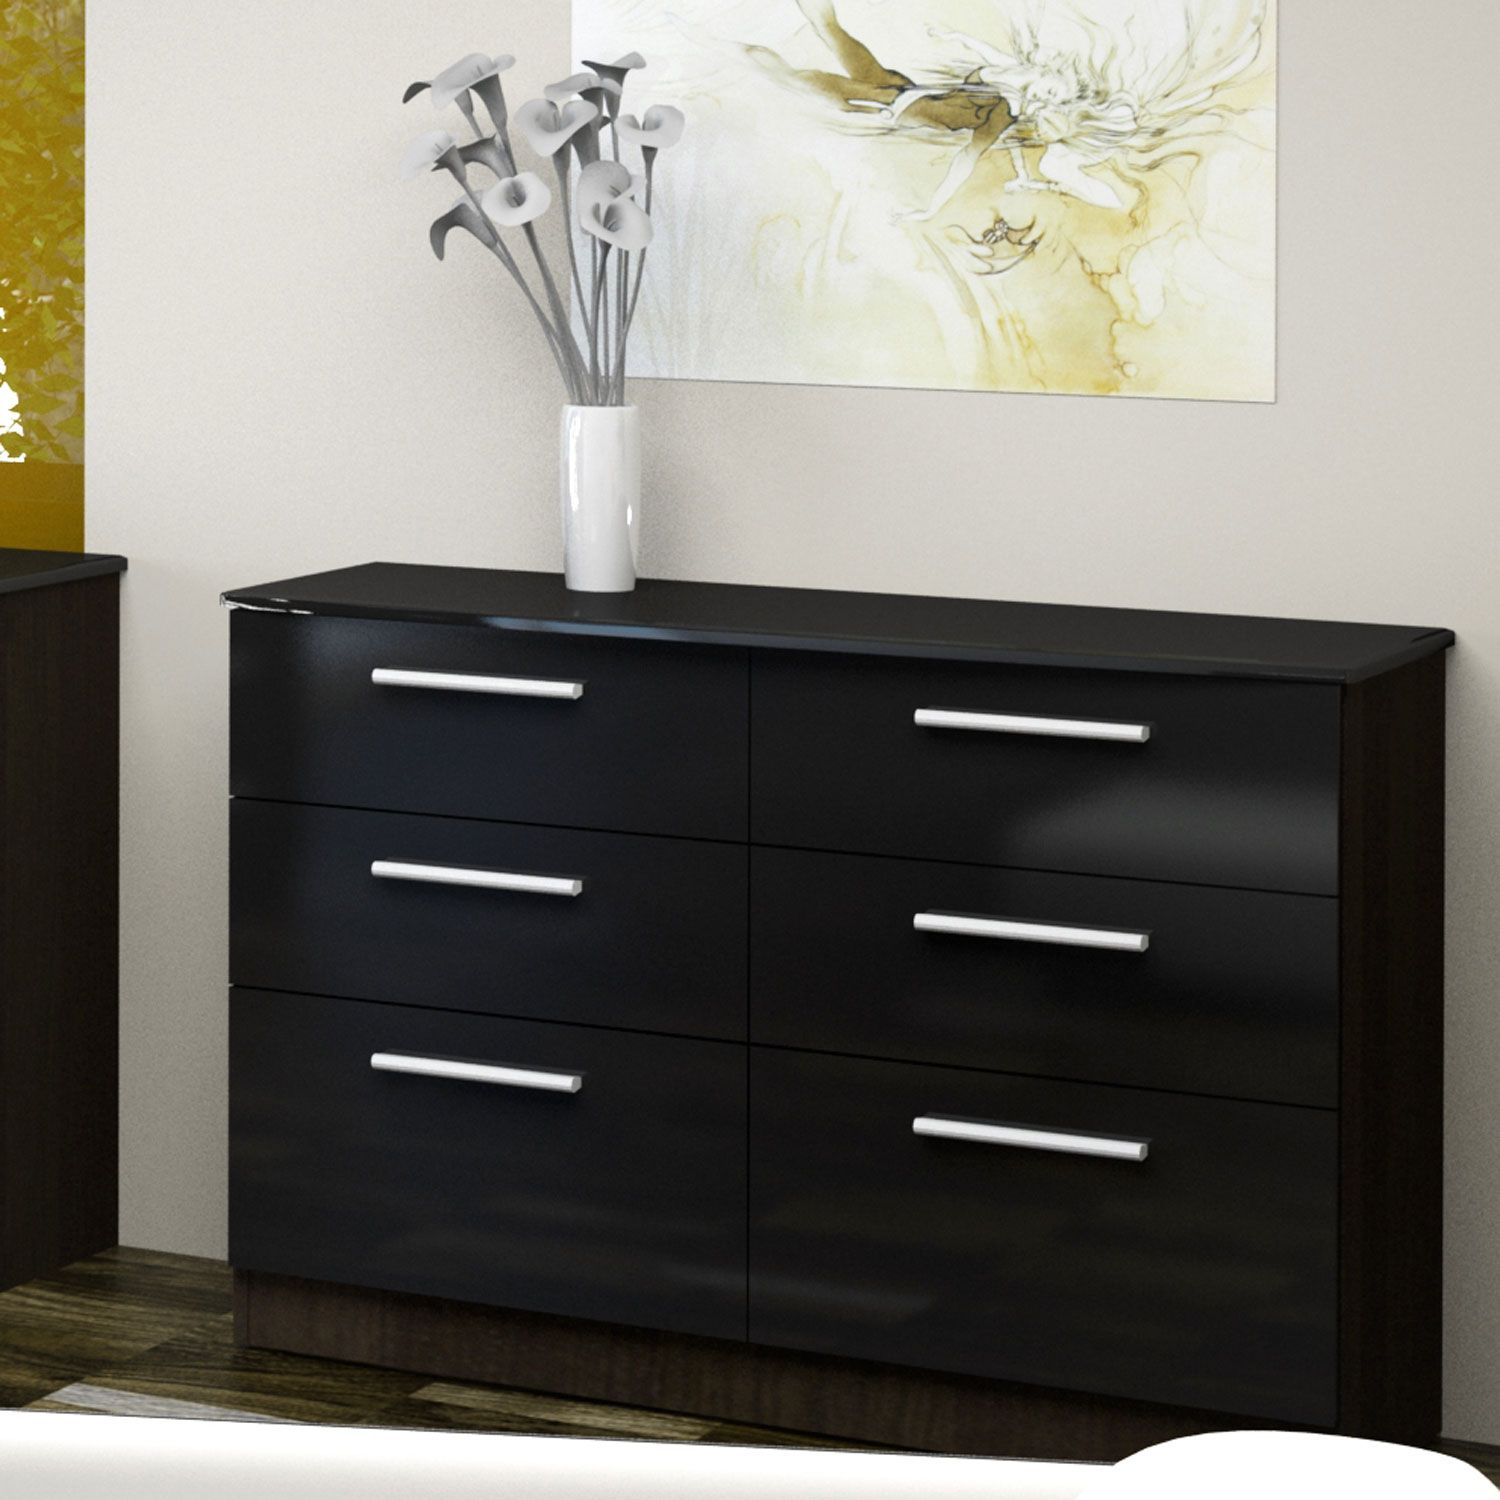 The Chester High Gloss Black And Ash 6 Drawer Chest Furniture Bedroom